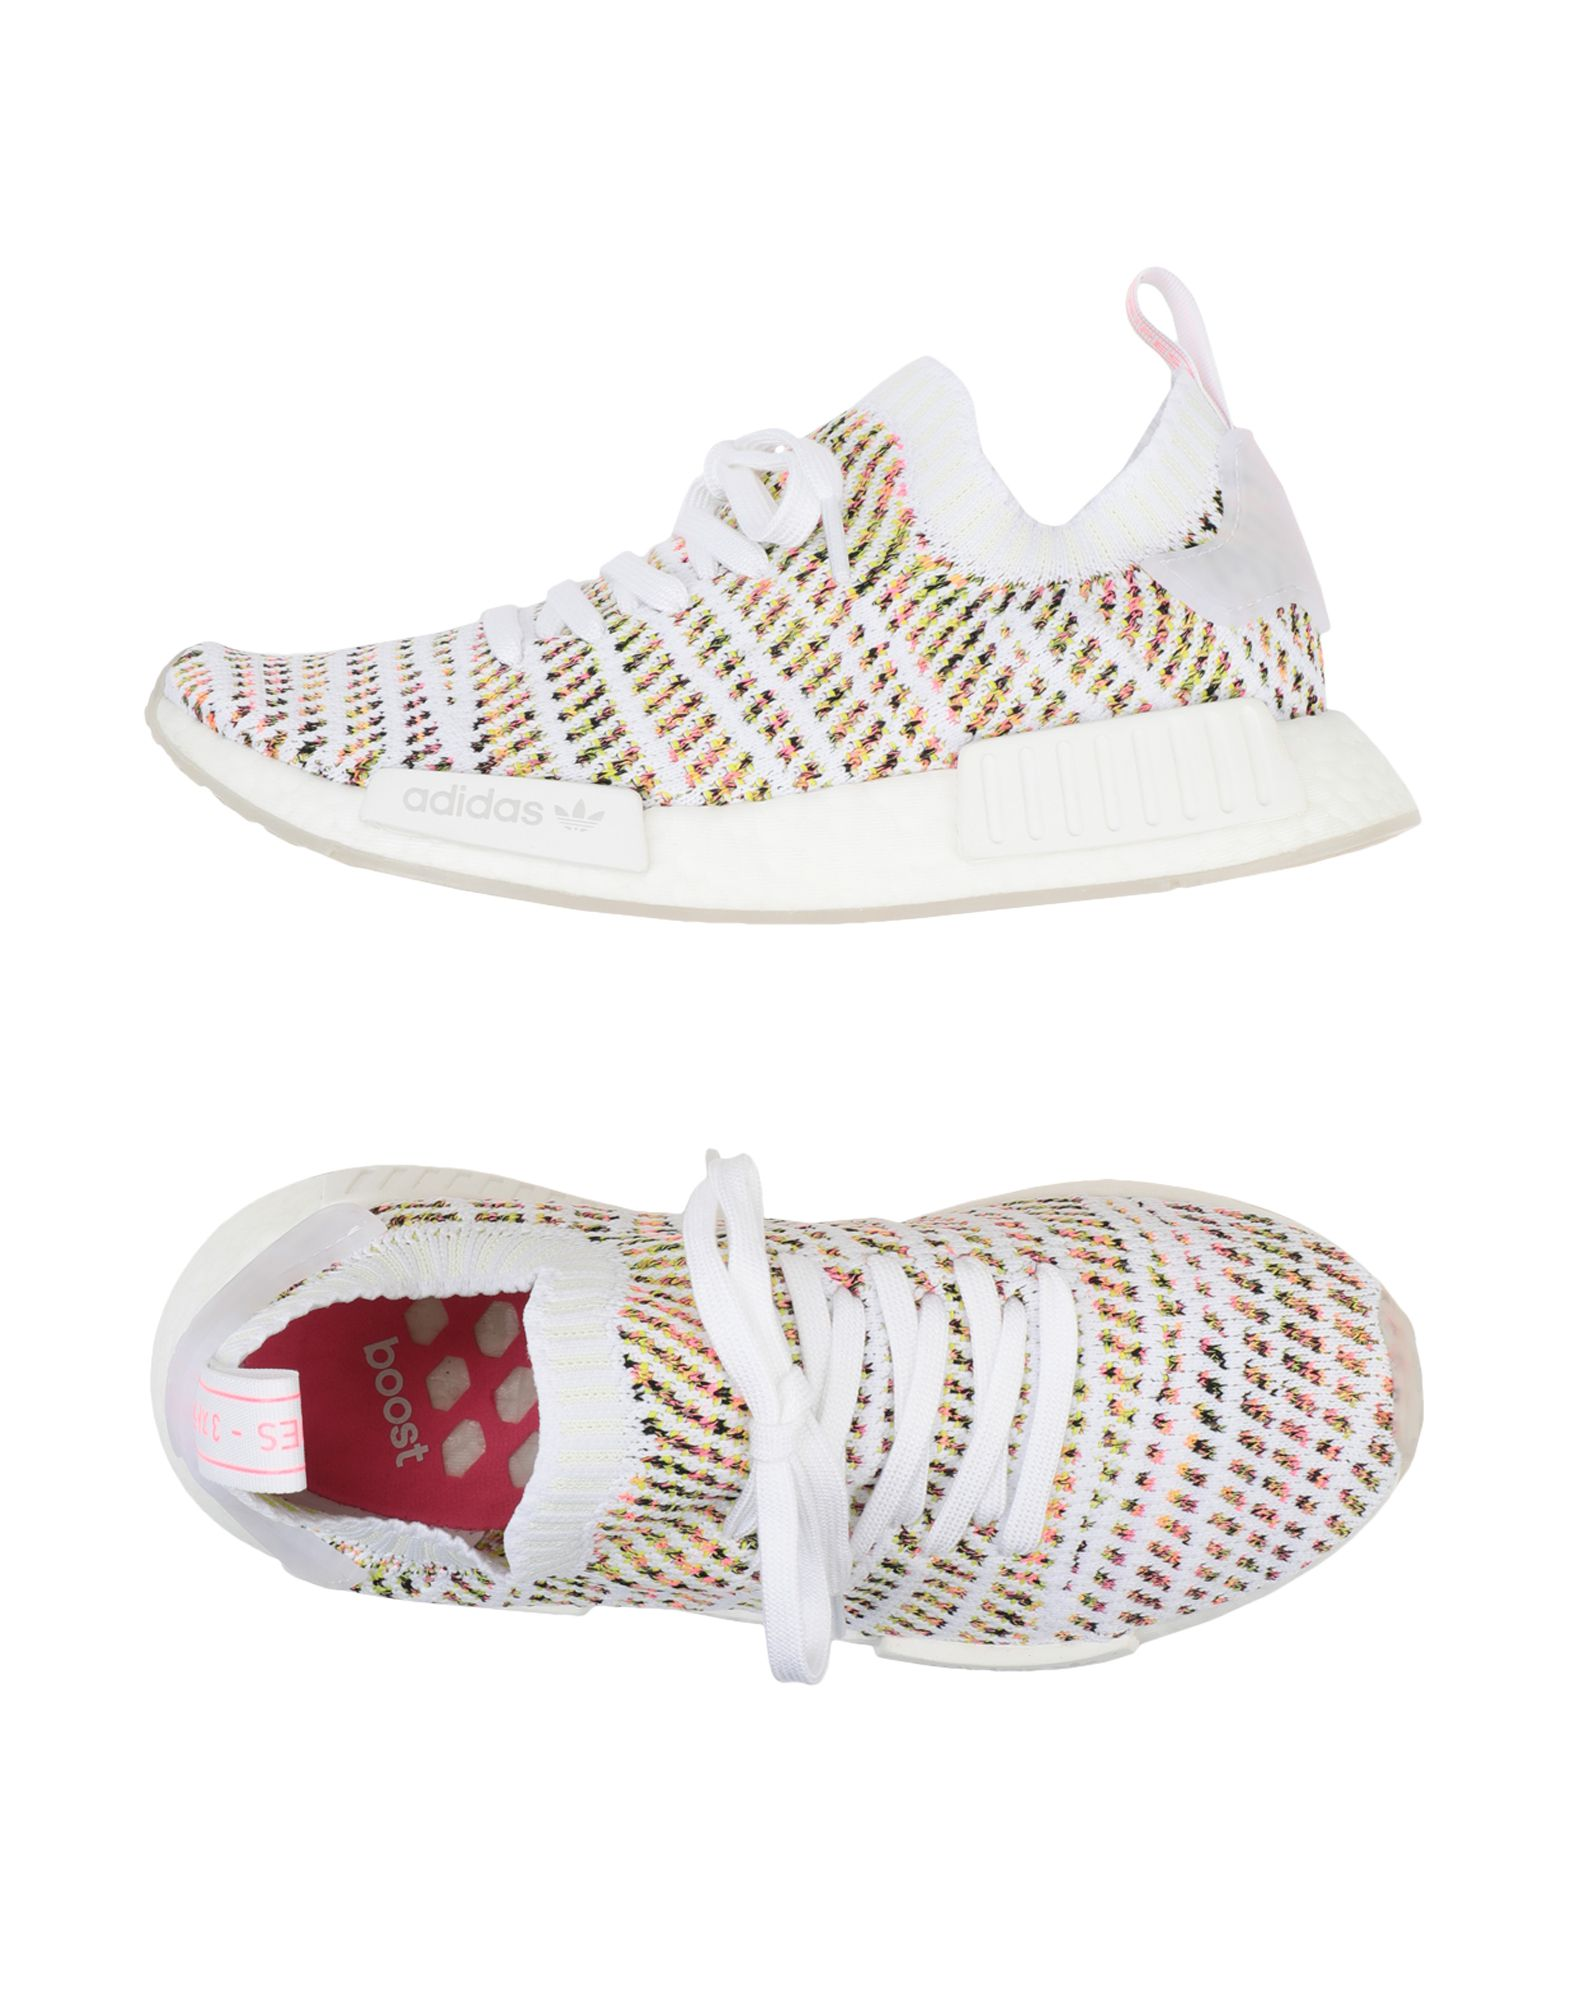 Baskets Adidas Originals Nmd_R1 Stlt Pk W - Femme - Baskets Adidas Originals Blanc Remise de marque